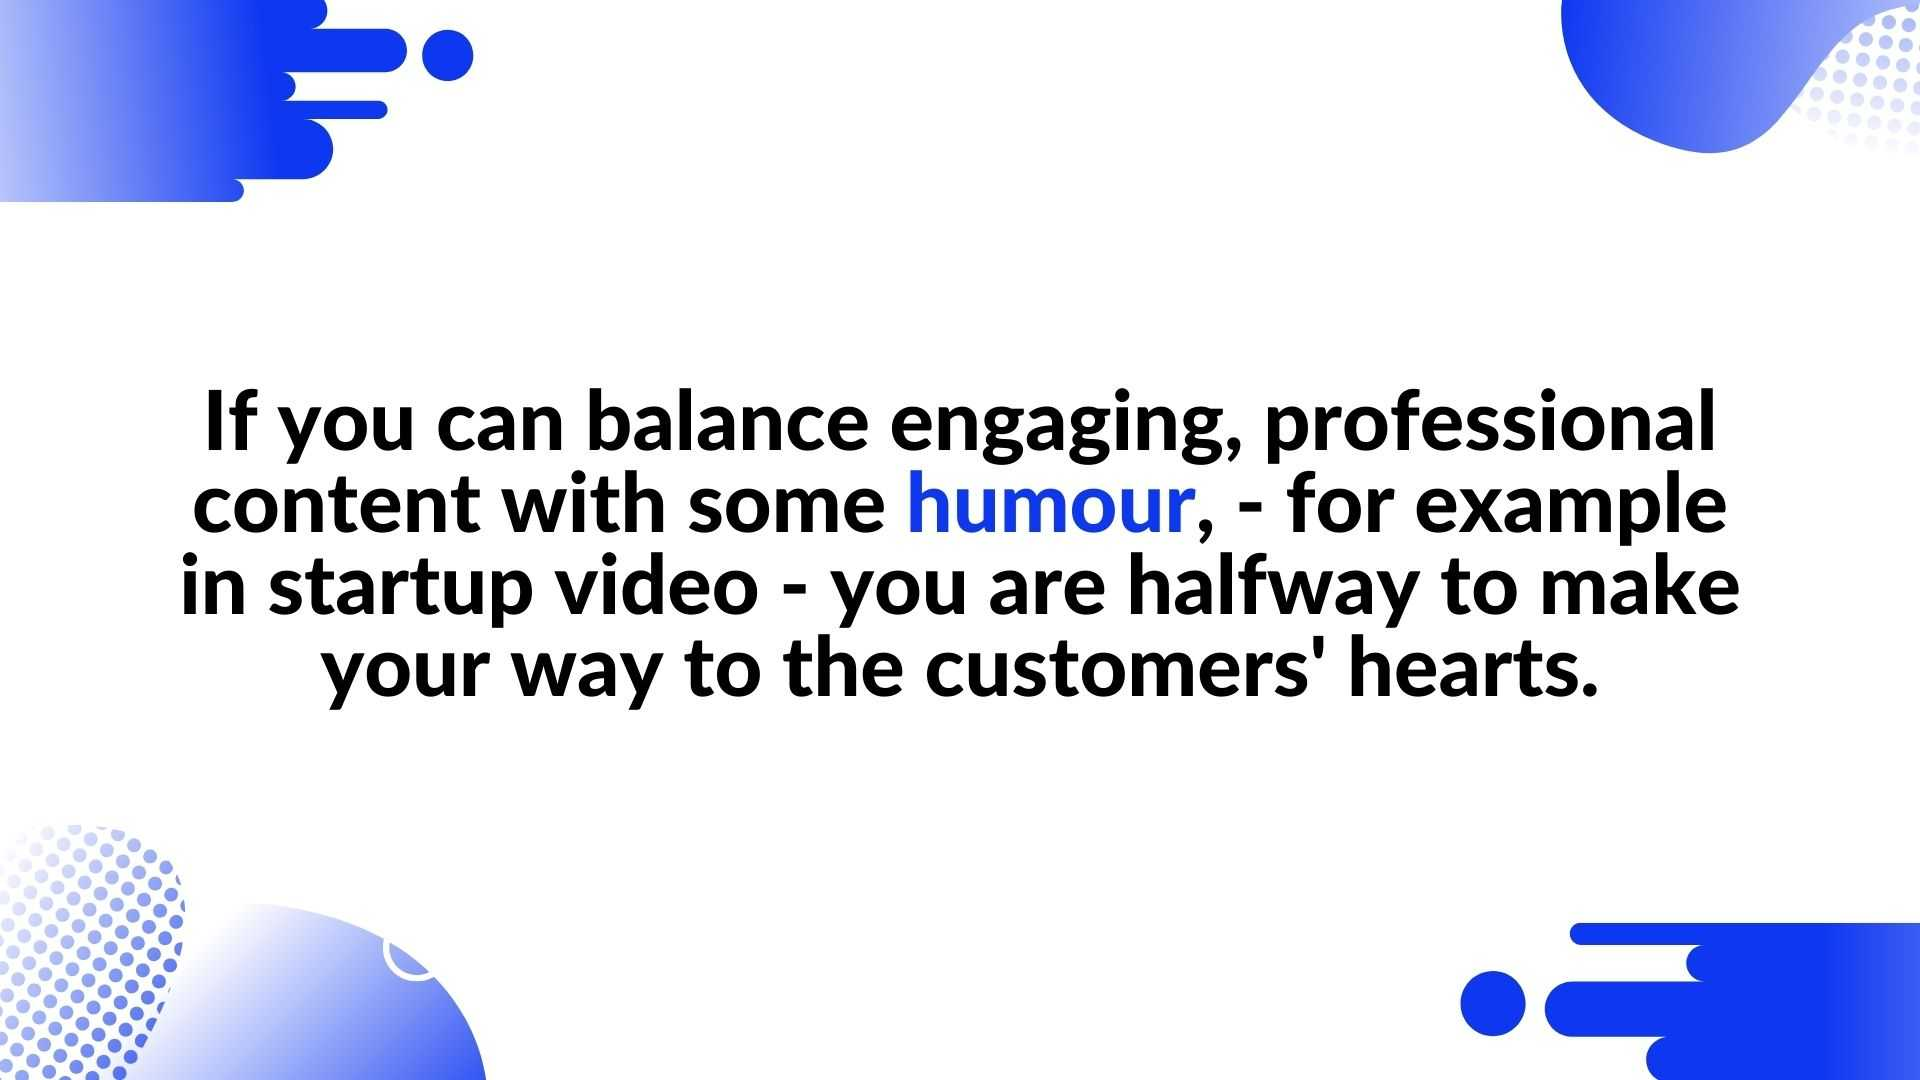 If you can balance engaging, professional content with some humour, - for example in startup video - you are halfway to make your way to the customers' hearts - animated video for your brand